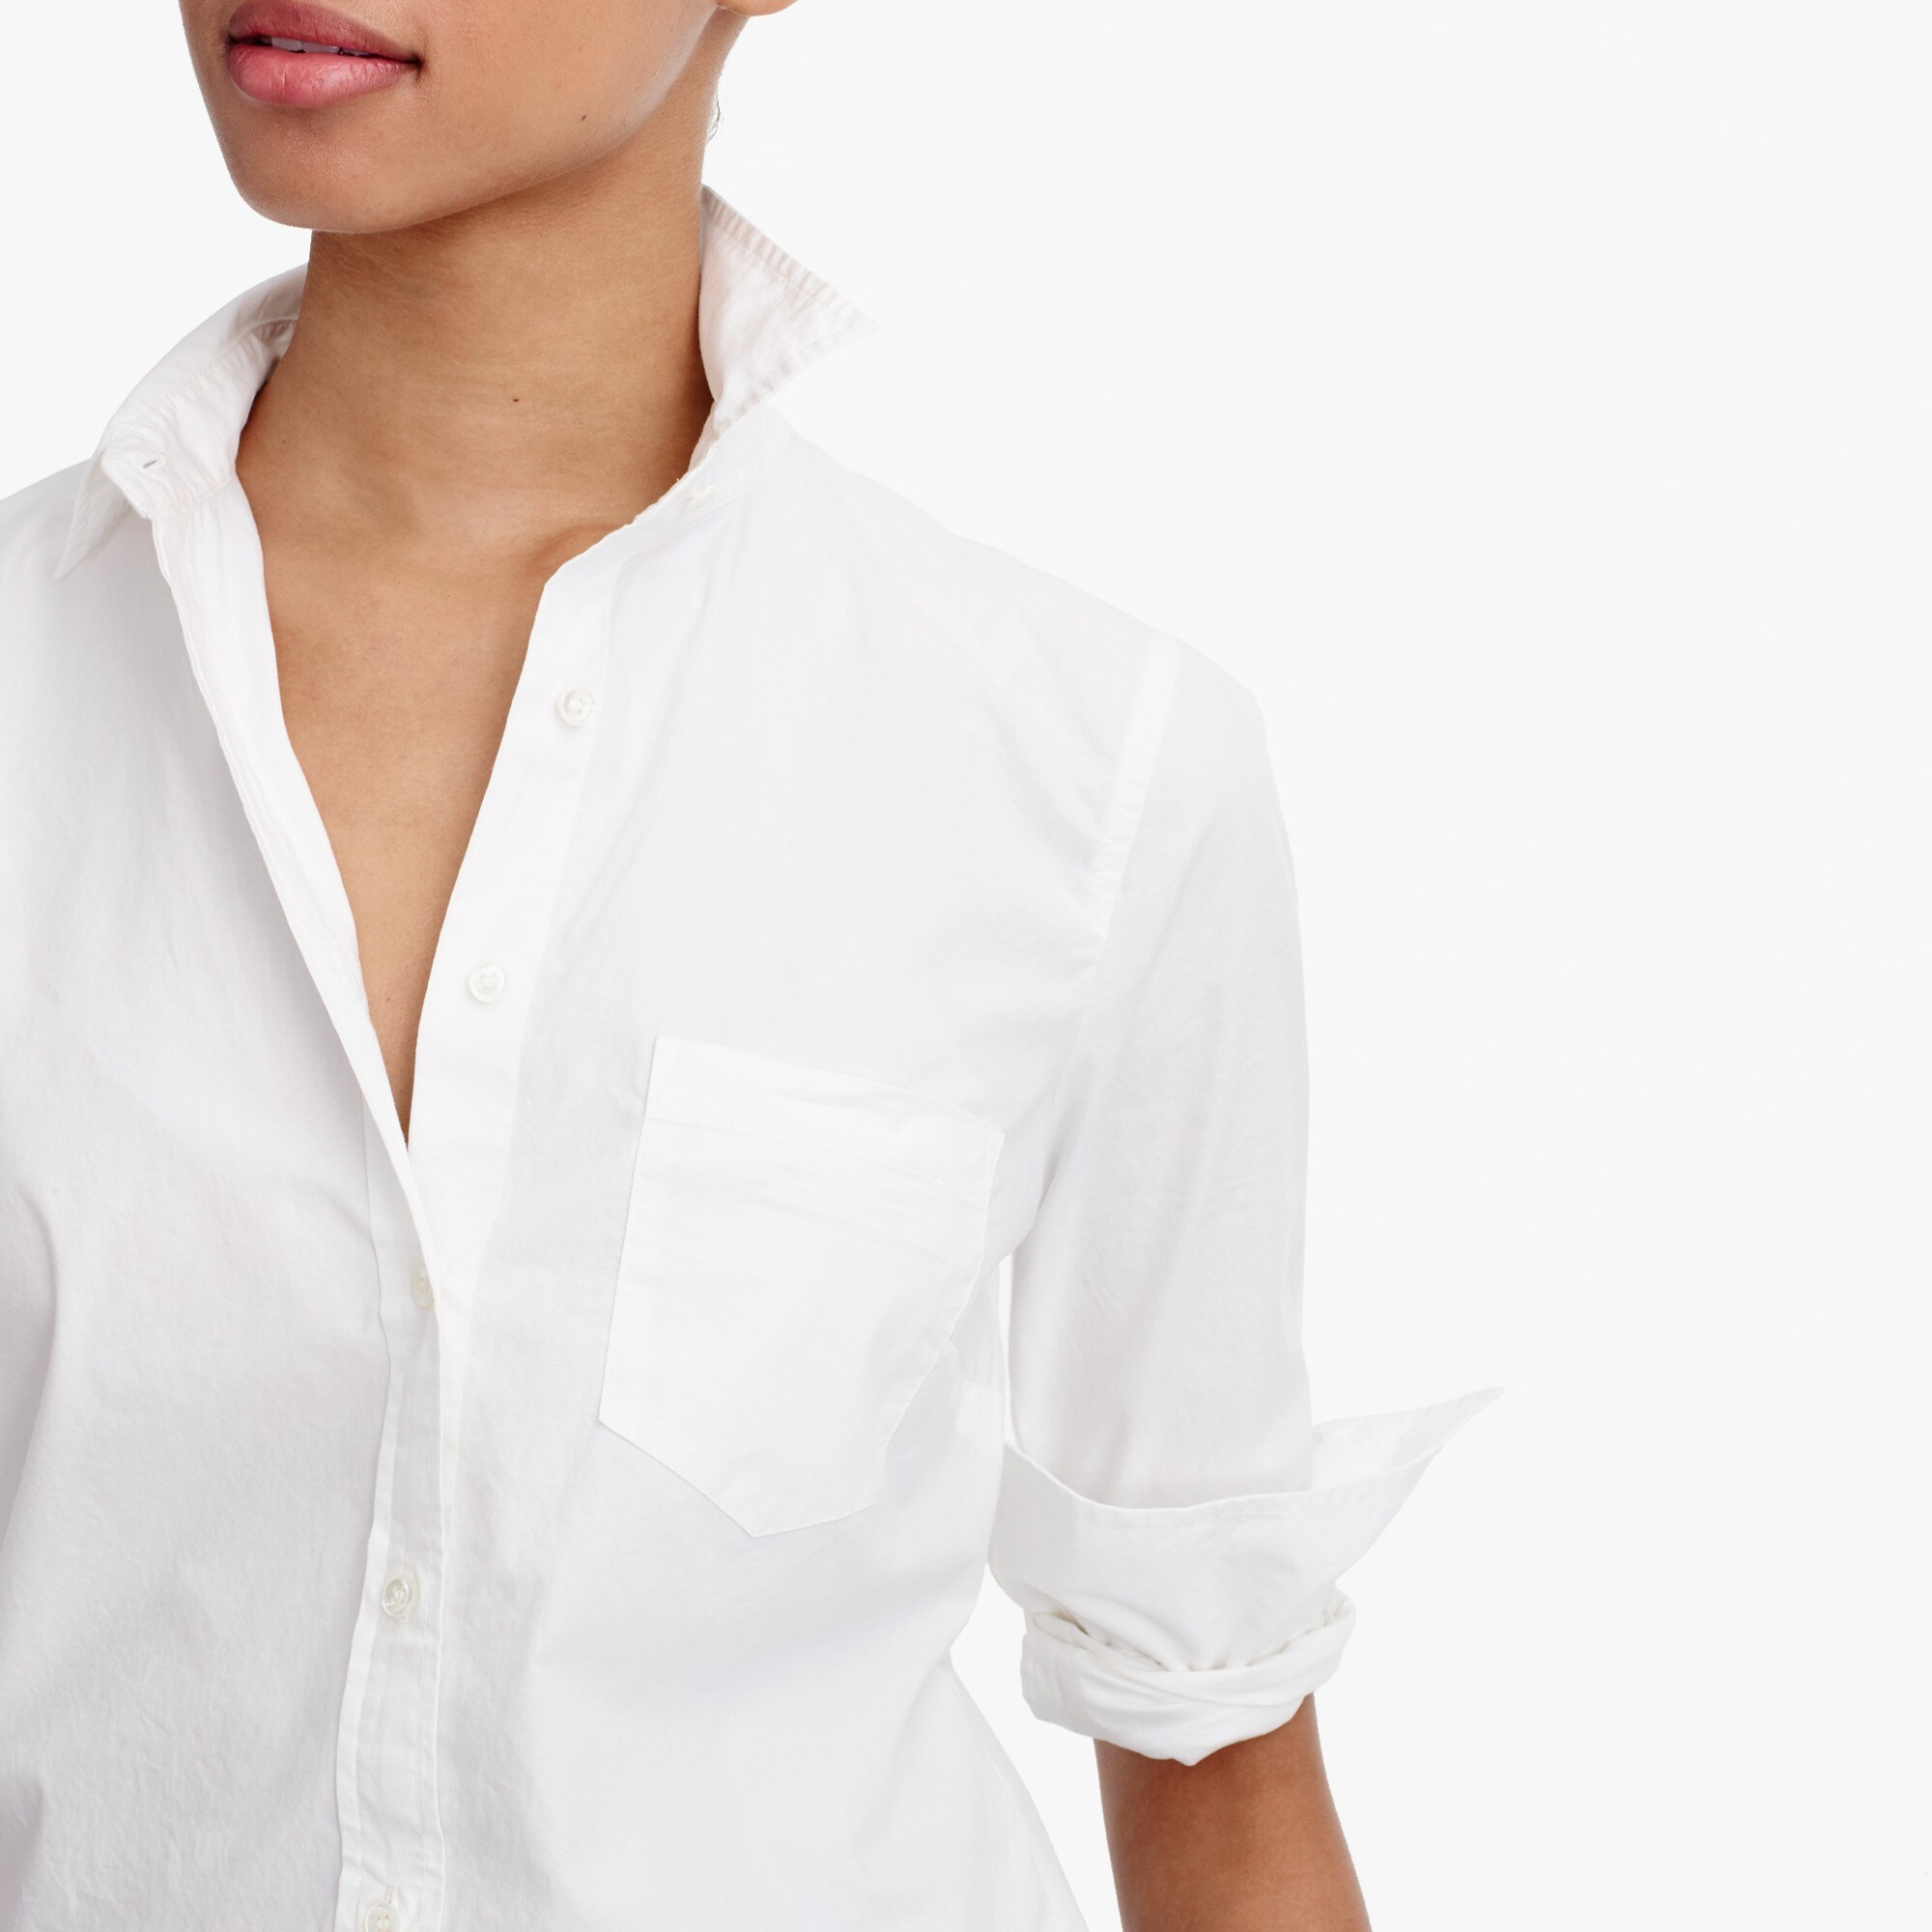 Image 3 for Petite new perfect shirt in cotton poplin